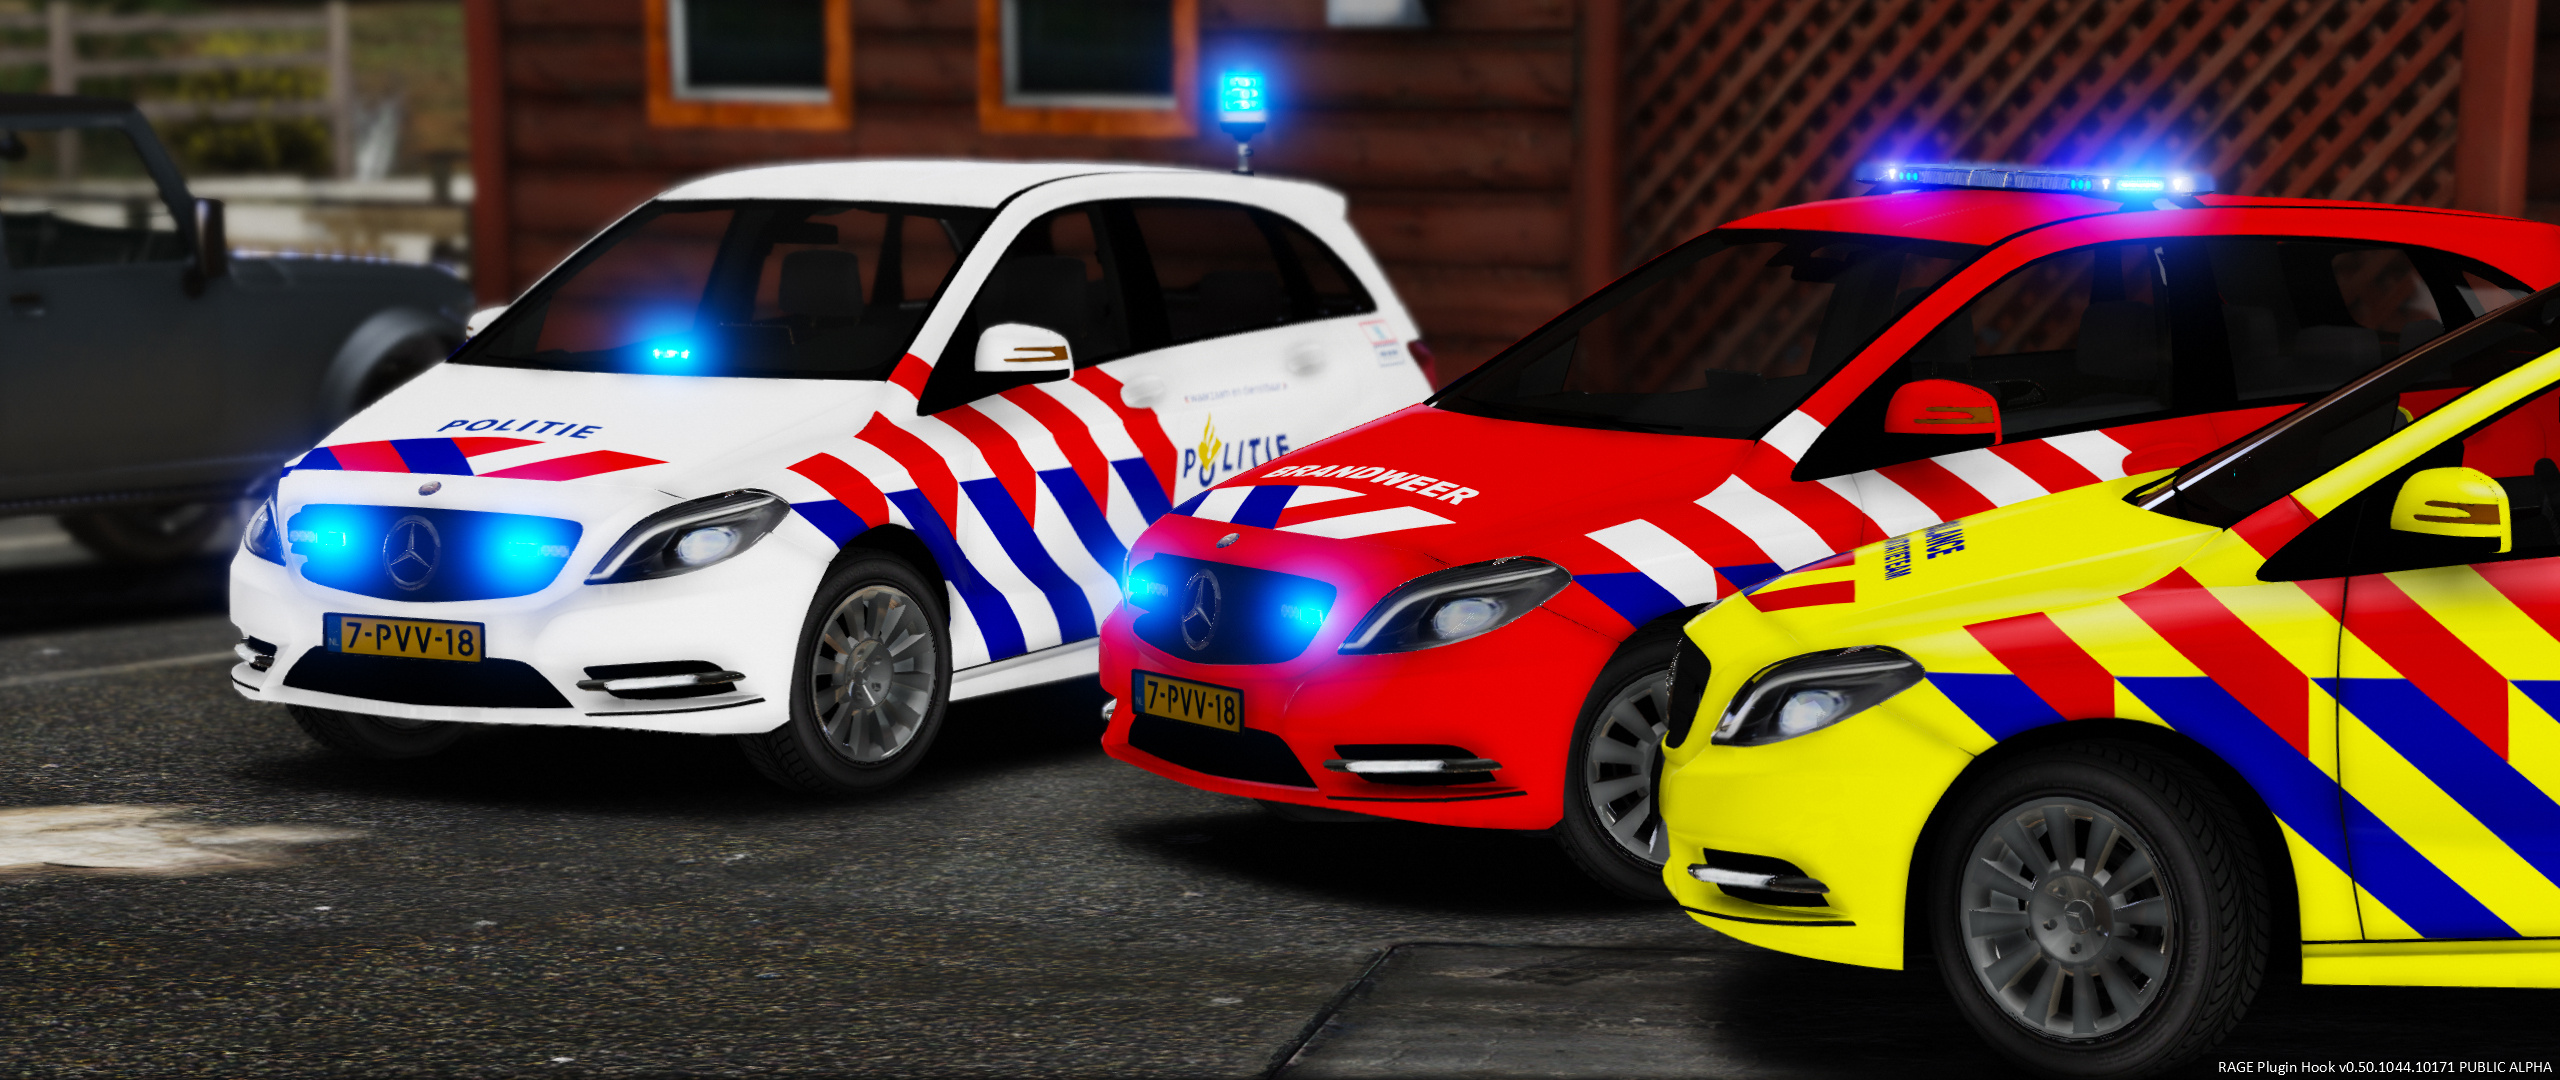 mercedes benz b klasse dutch fire ems service gta5. Black Bedroom Furniture Sets. Home Design Ideas